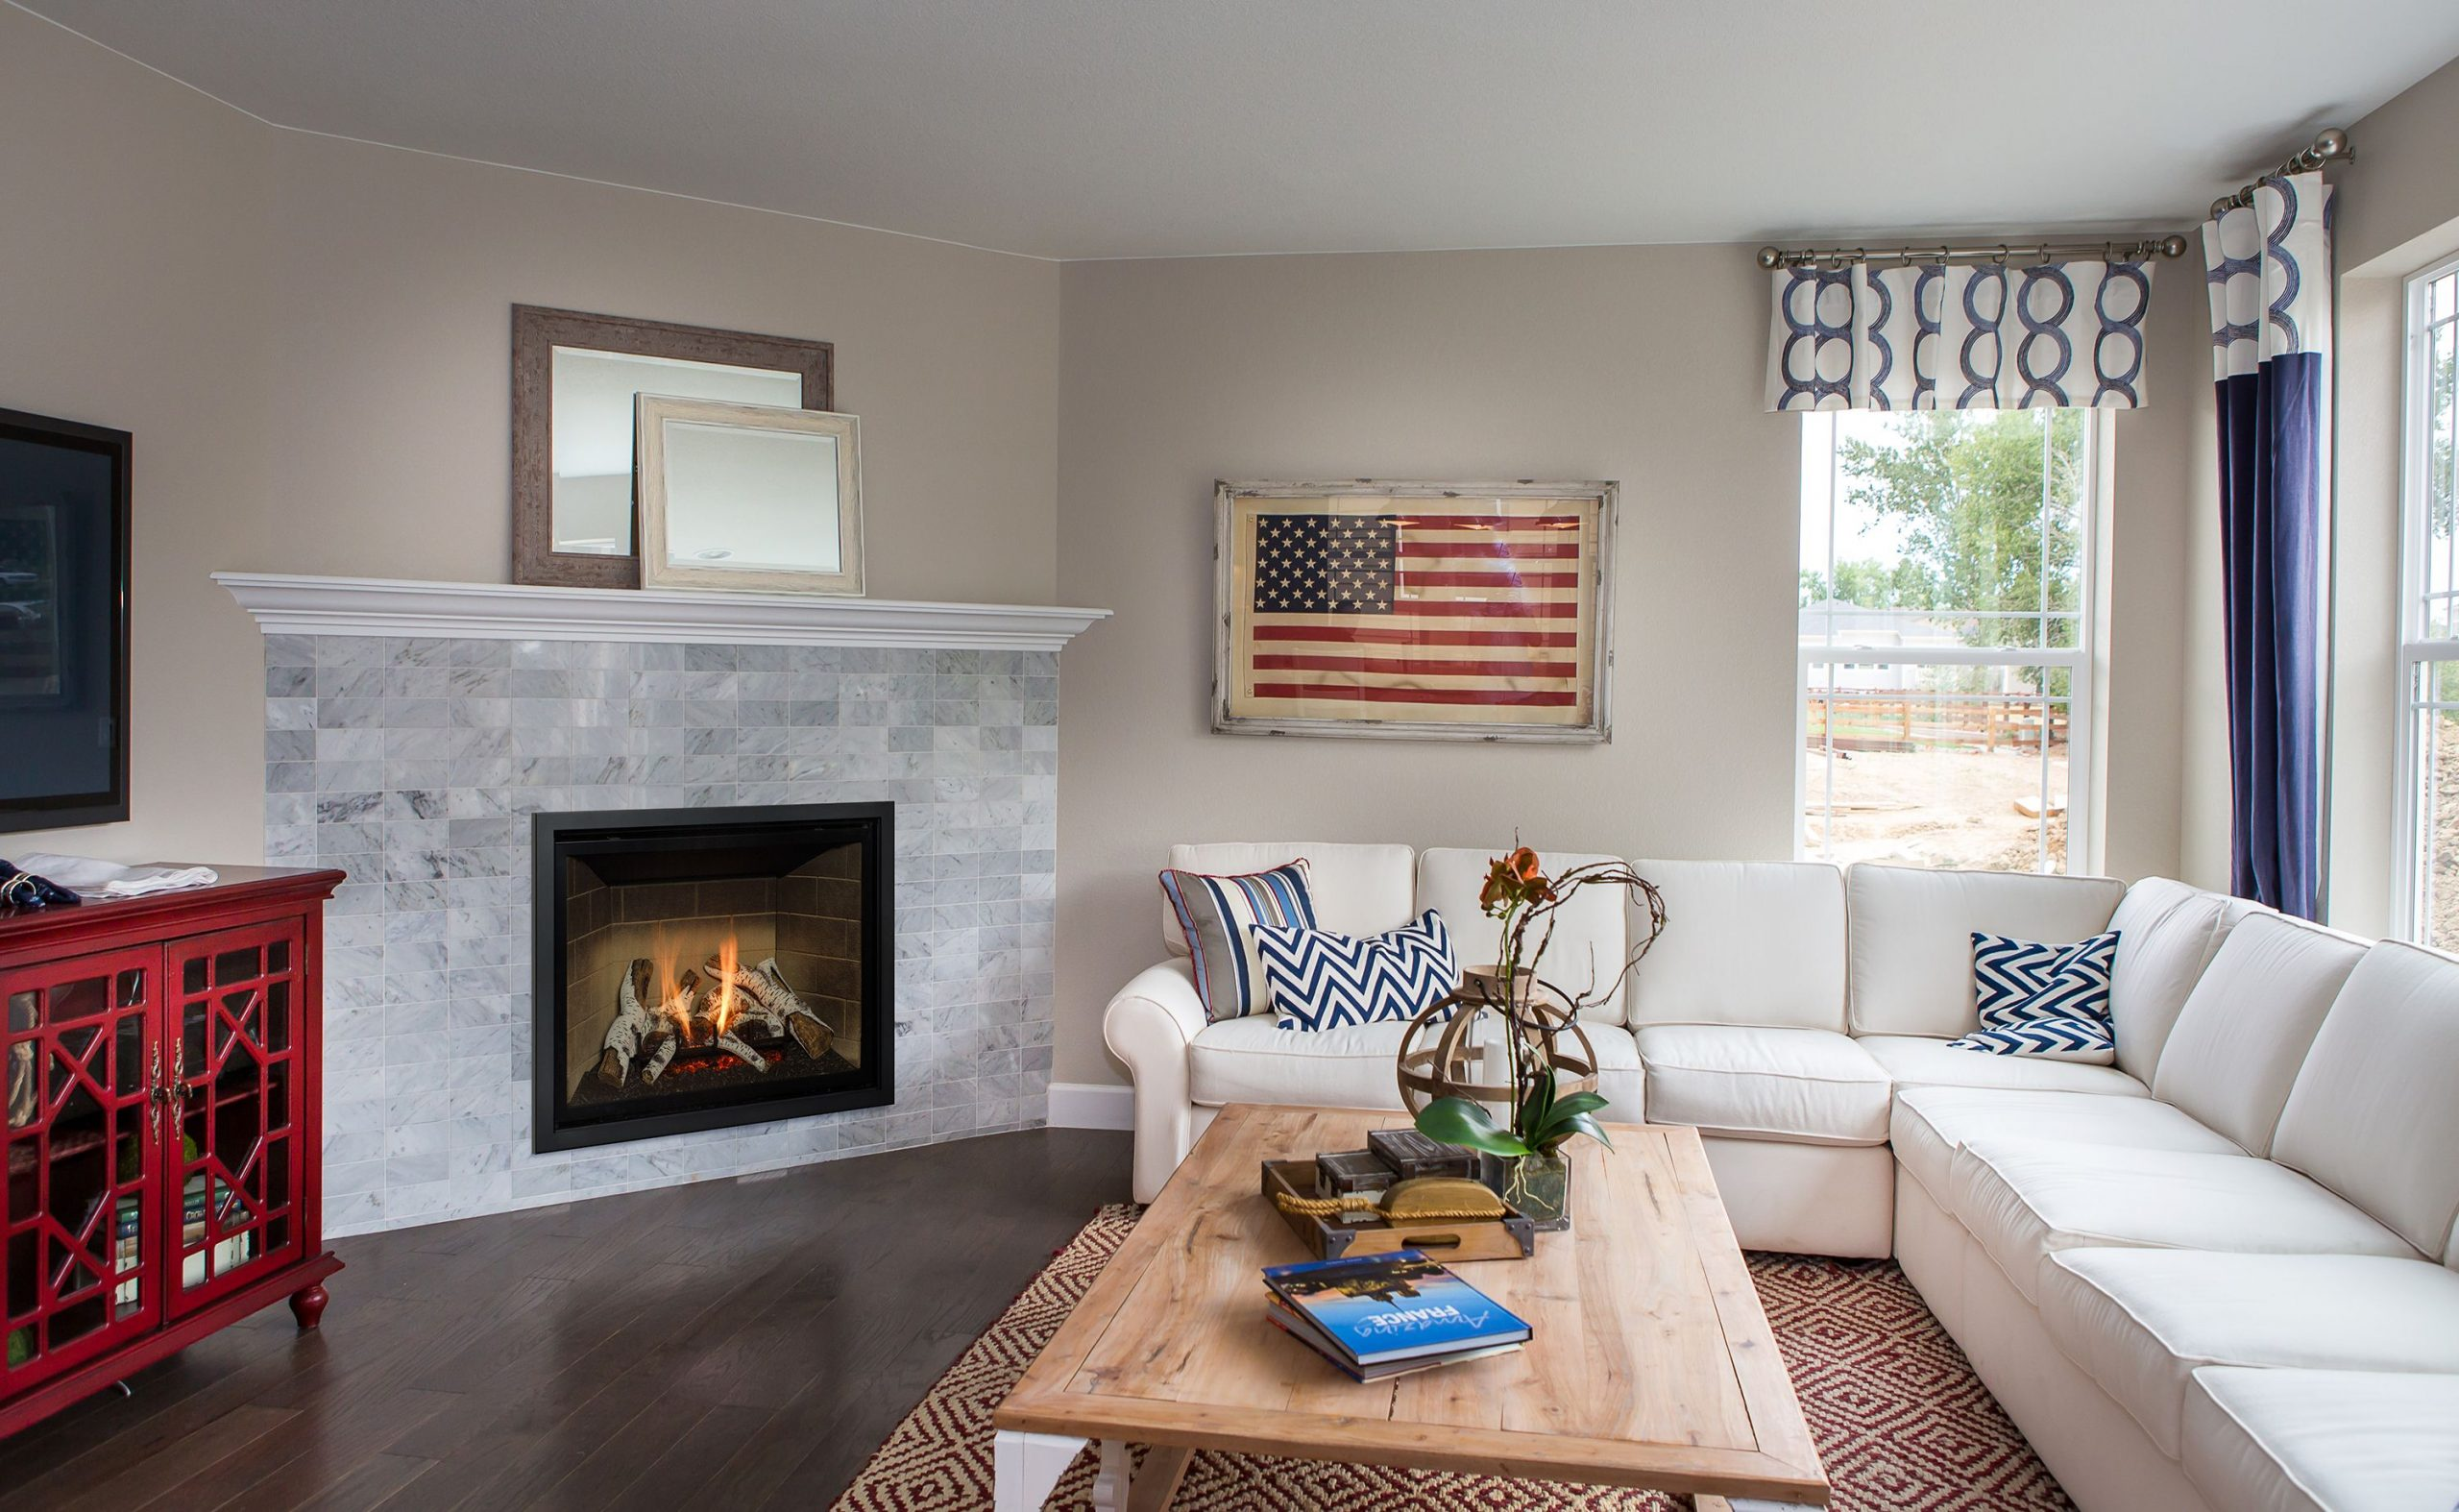 How Much Does it Cost to Install a Gas Fireplace?